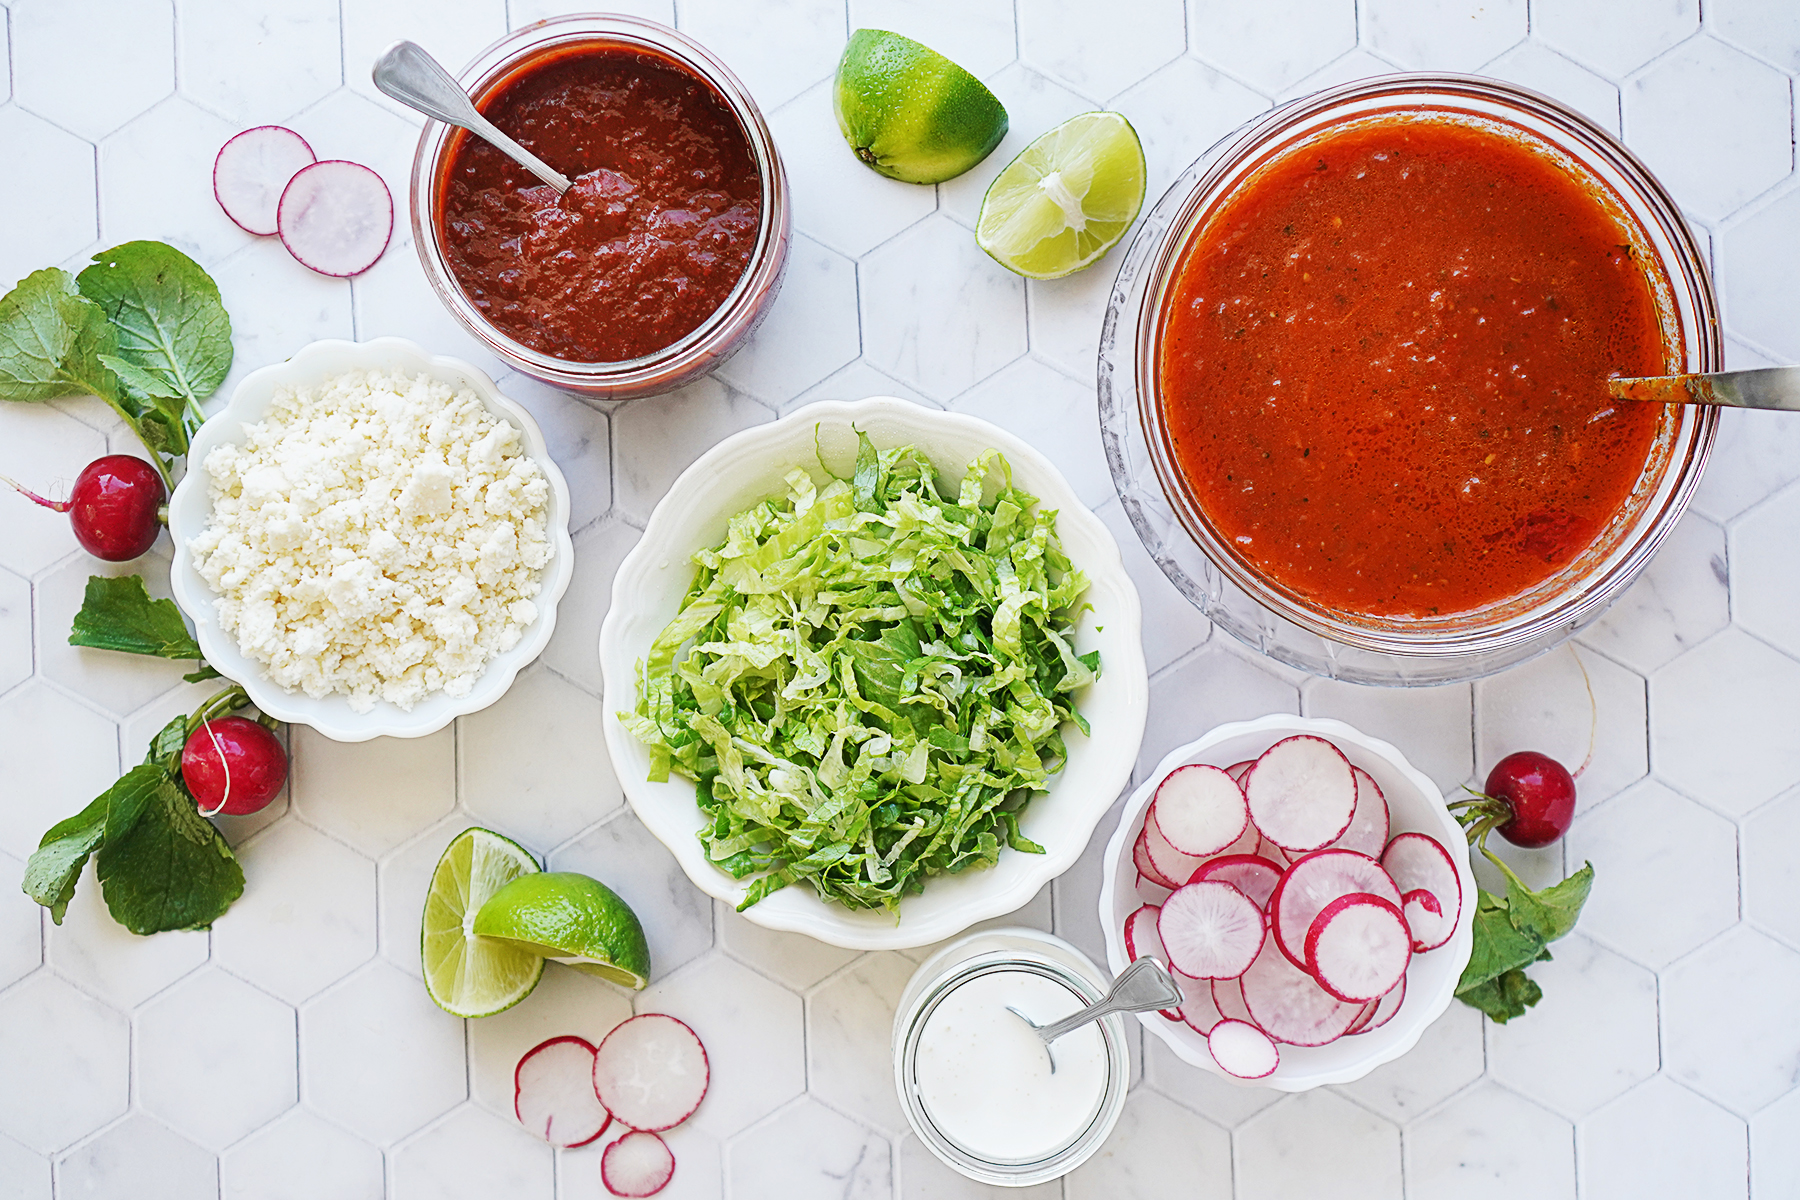 Toppings in small bowls: crumbled queso fresco, salsa, consome, shredded lettuce, sliced radishes & crema